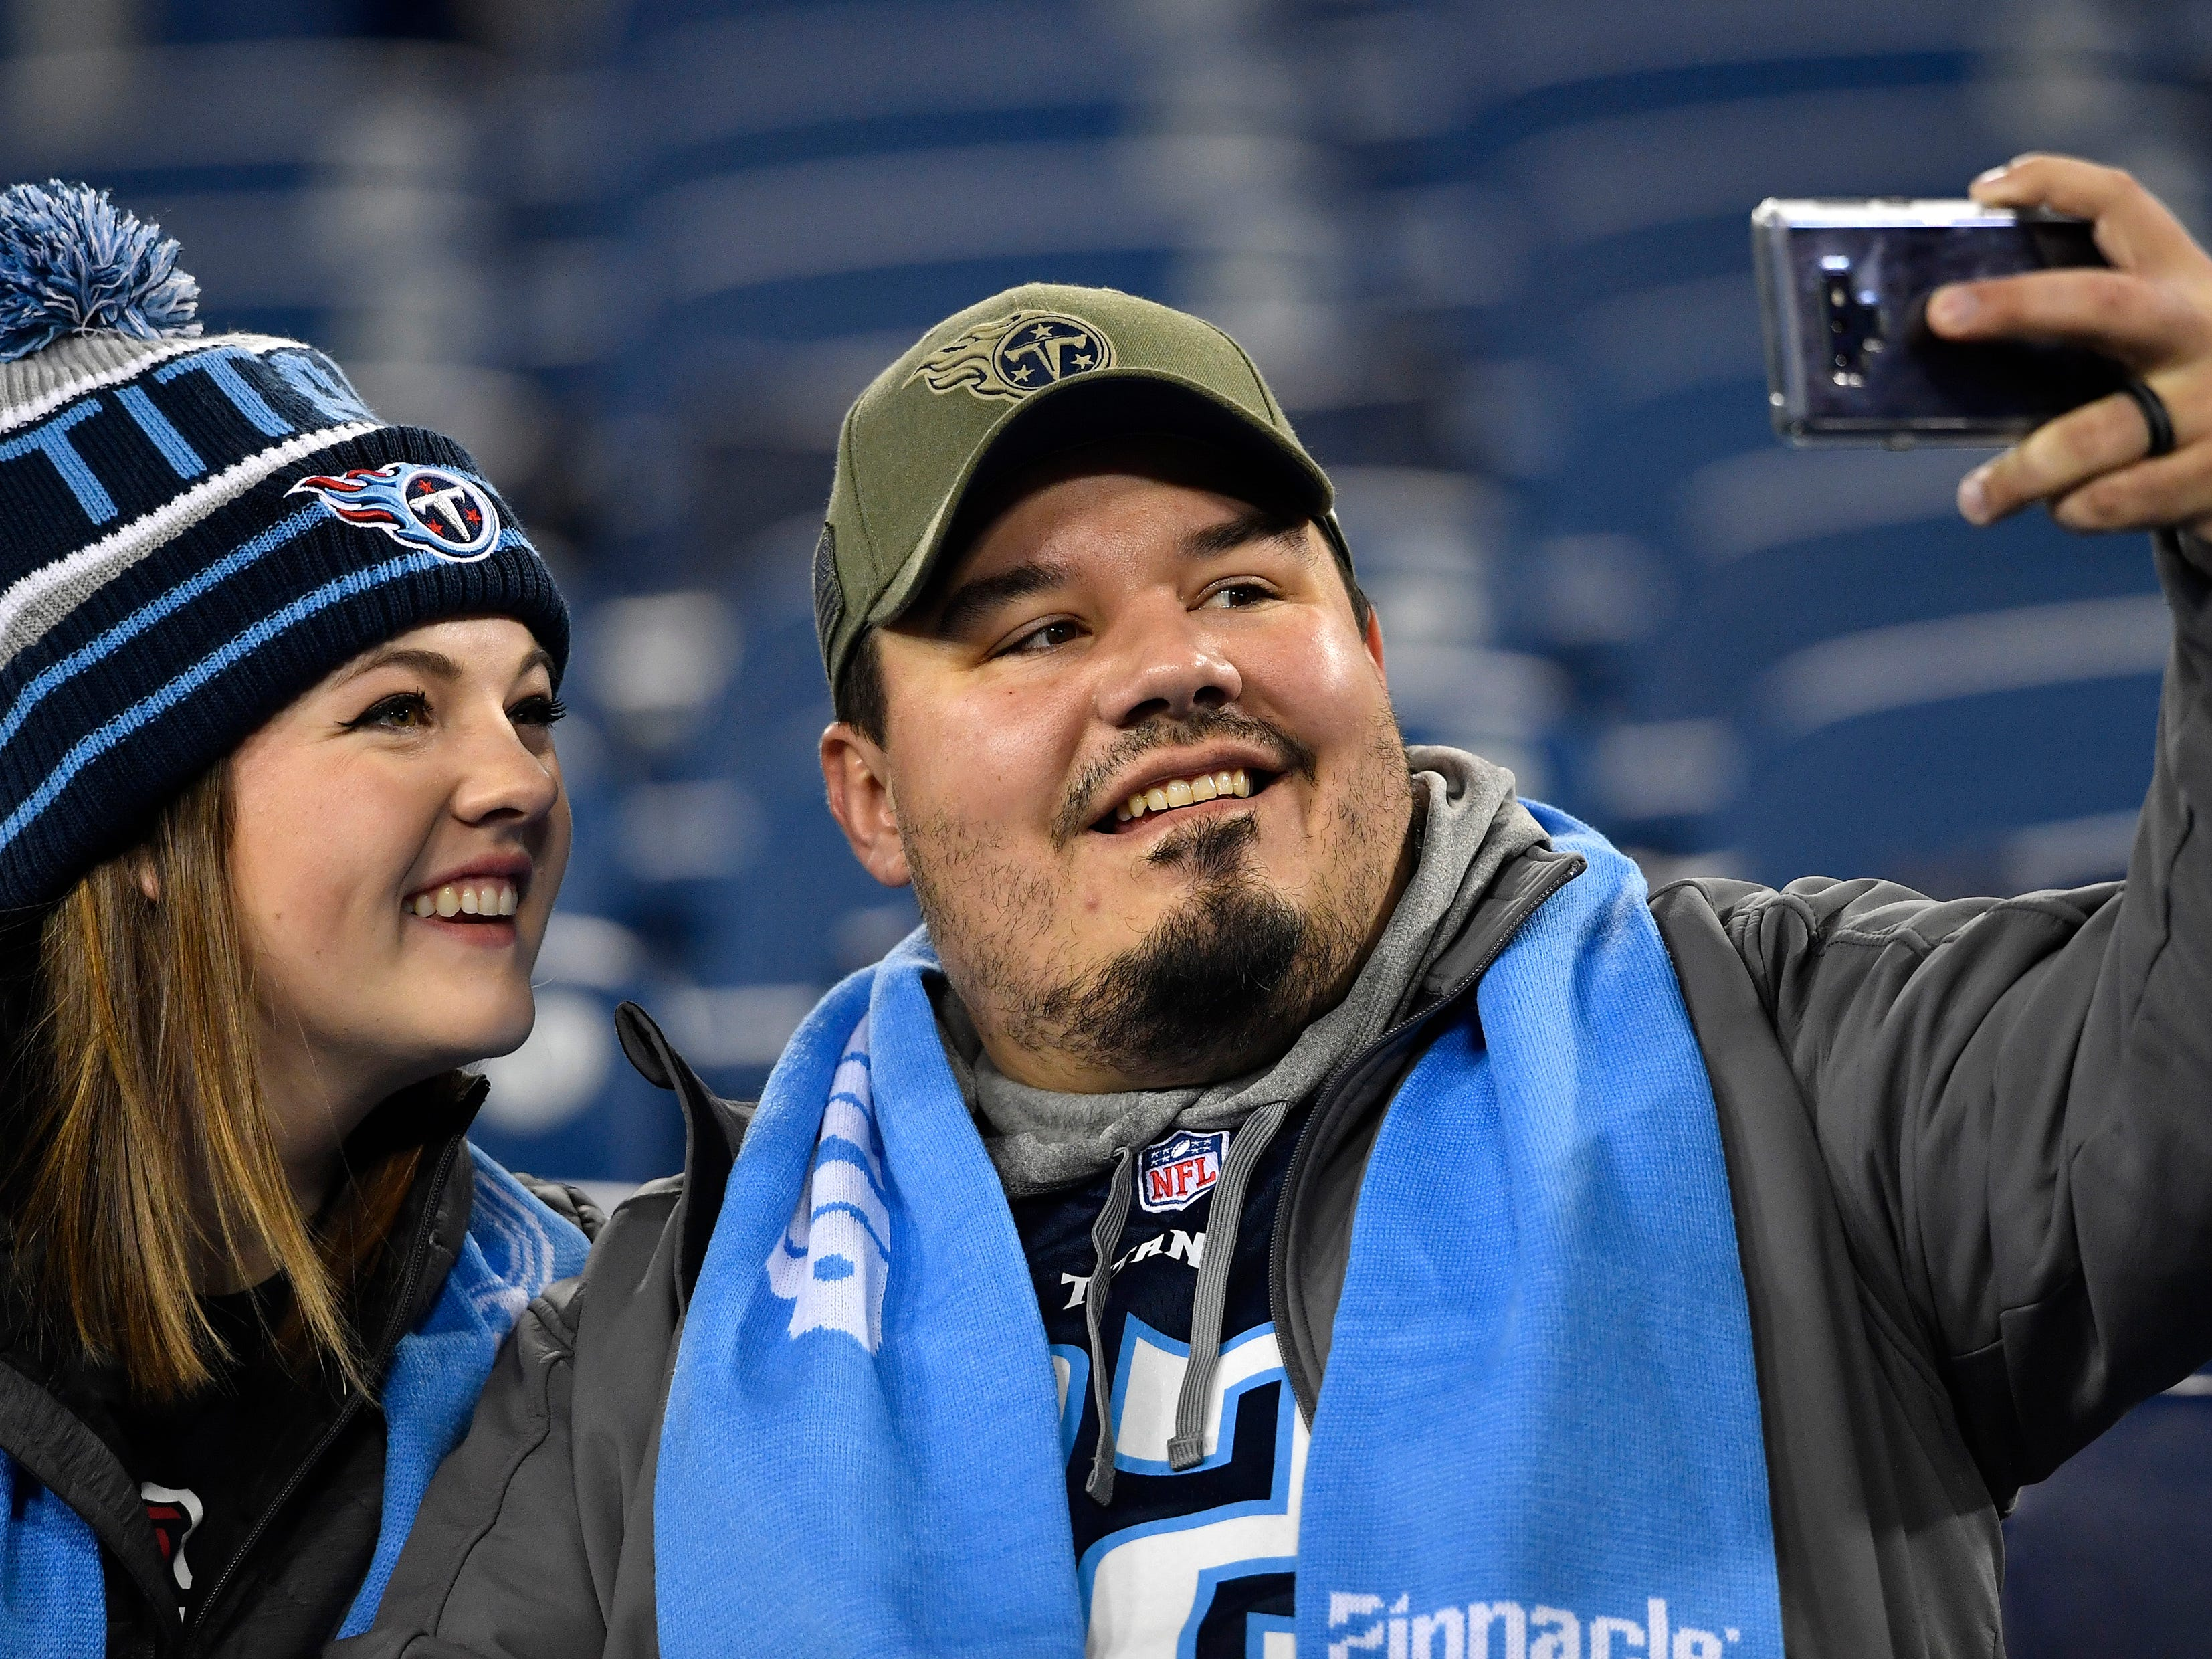 Titans fans take a selfie before the game against the Jaguars at Nissan Stadium Thursday, Dec. 6, 2018, in Nashville, Tenn.